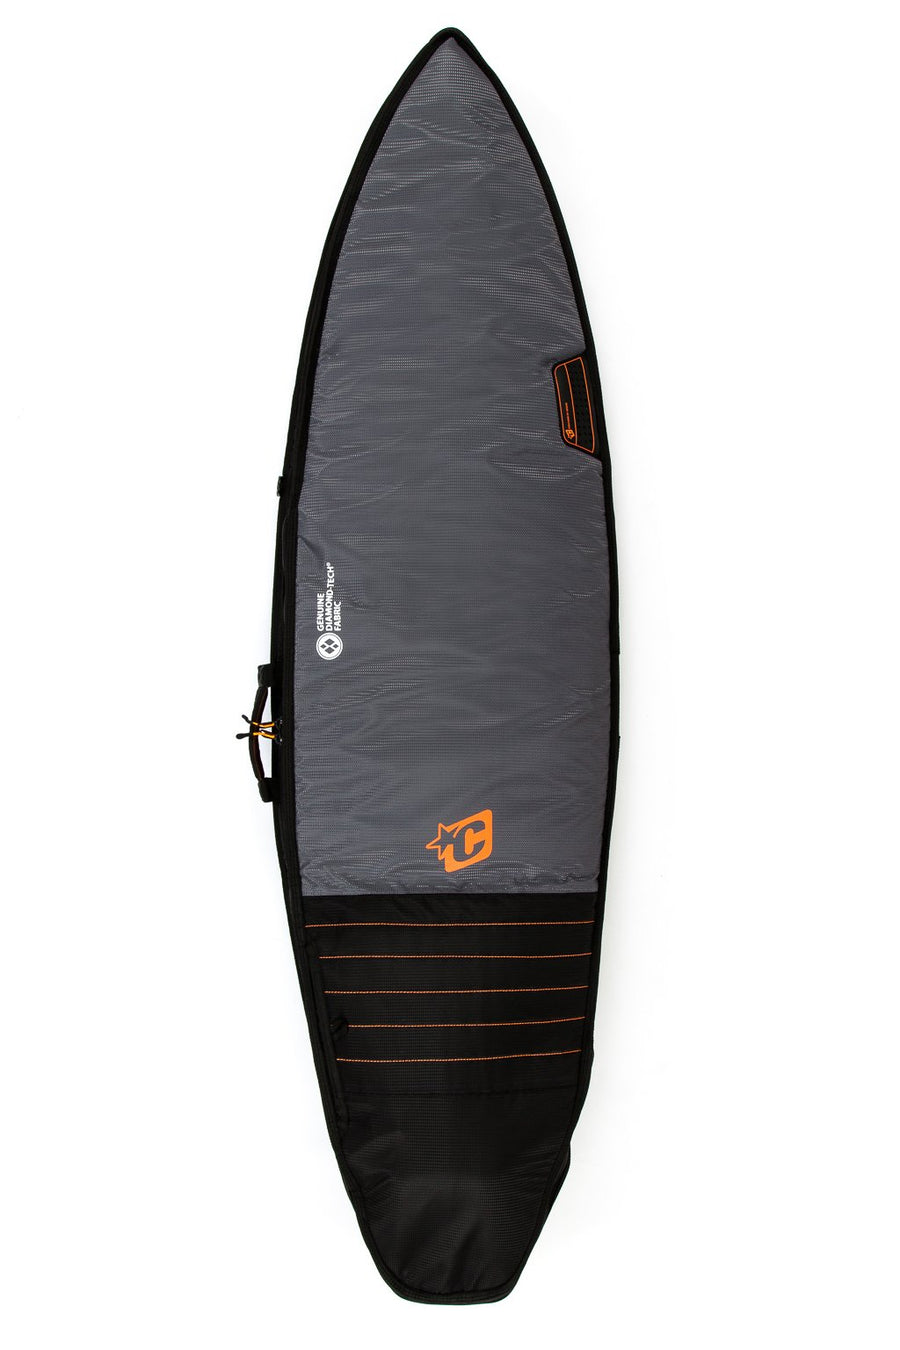 Creatures Of Leisure Travel Shortboard Cover Shop HERE